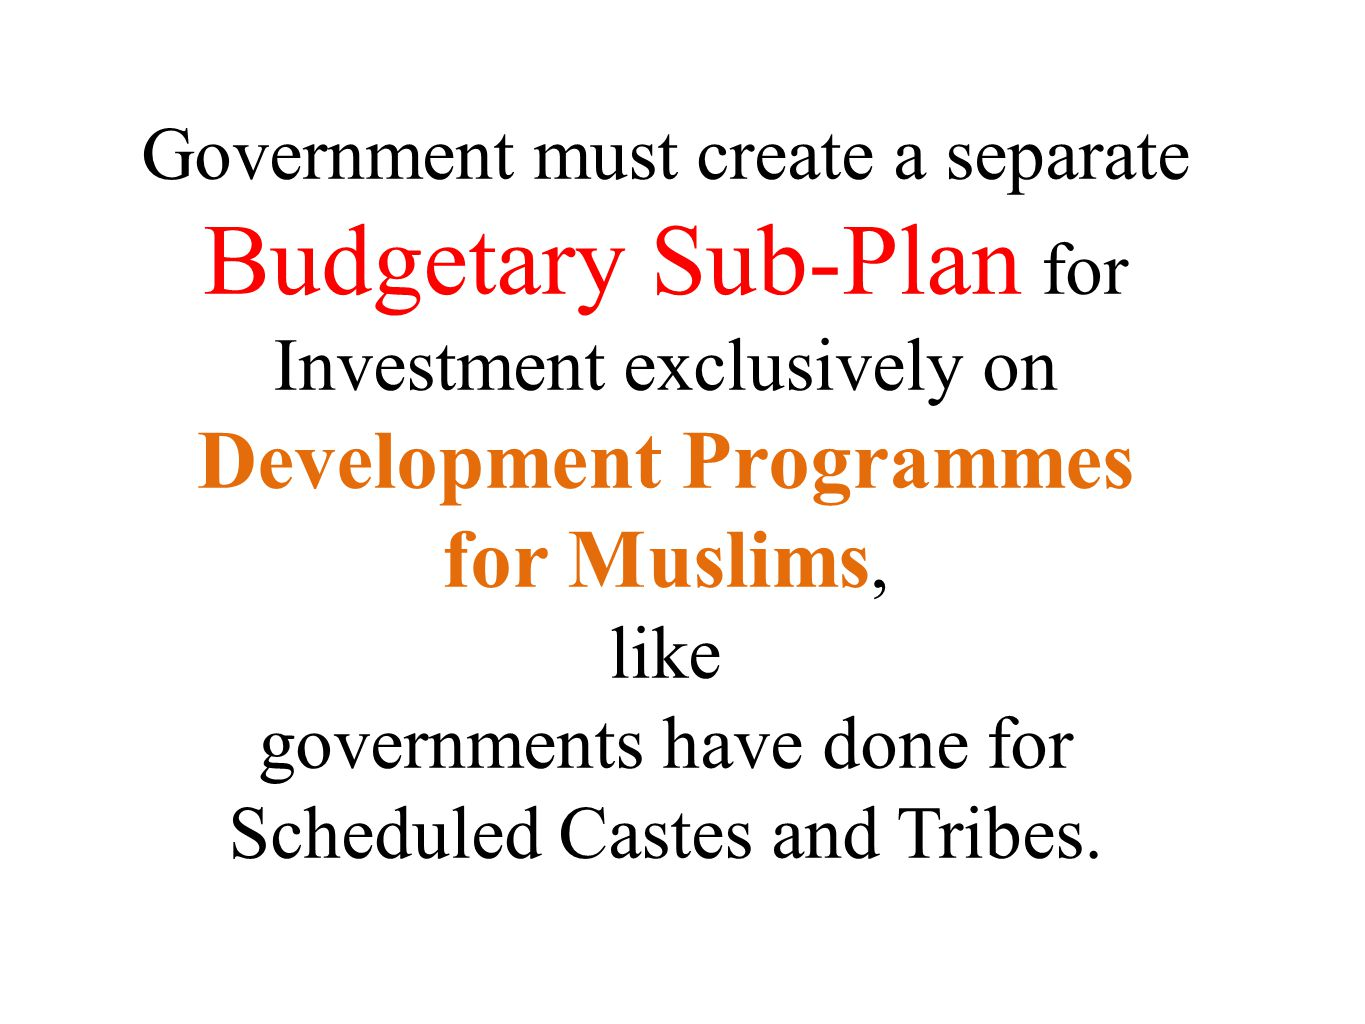 Government must create a separate Budgetary Sub-Plan for Investment exclusively on Development Programmes for Muslims, like governments have done for